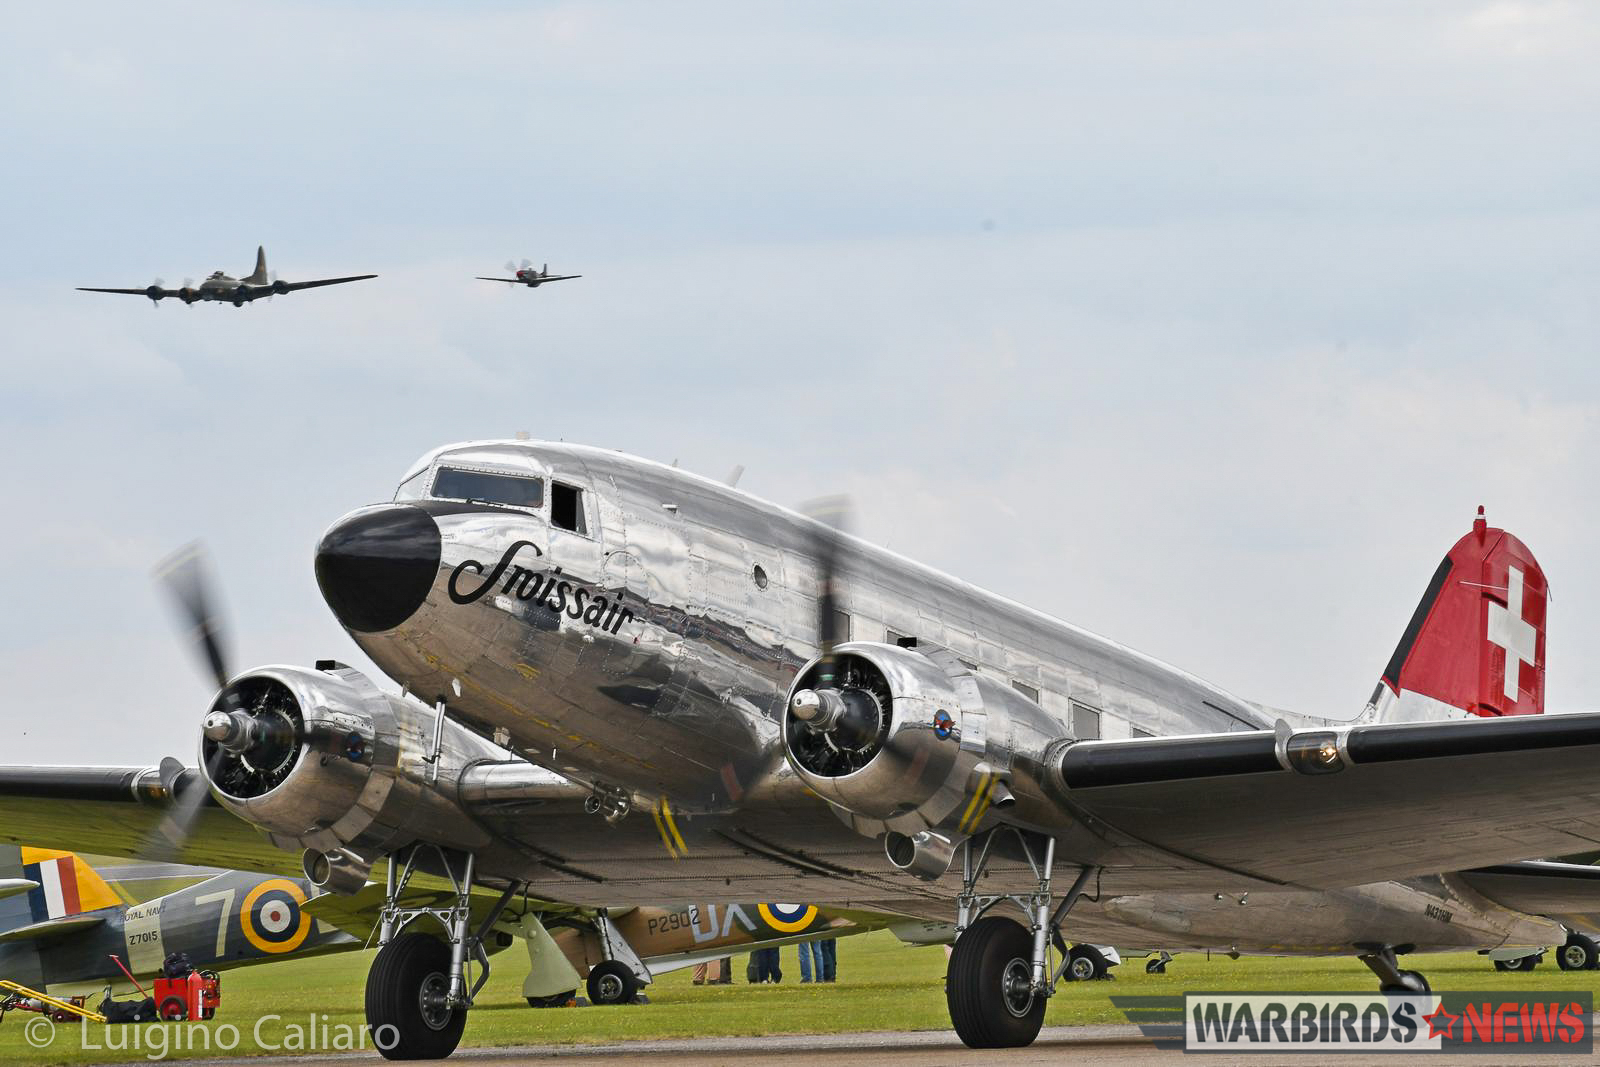 A fabulously maintained Swiss-based DC-3 taxies past a row of Hawker Hurricanes while B-17G 'Sally-B' flies overhead in company of a 'Little Friend'. (photo by Luigino Caliaro)